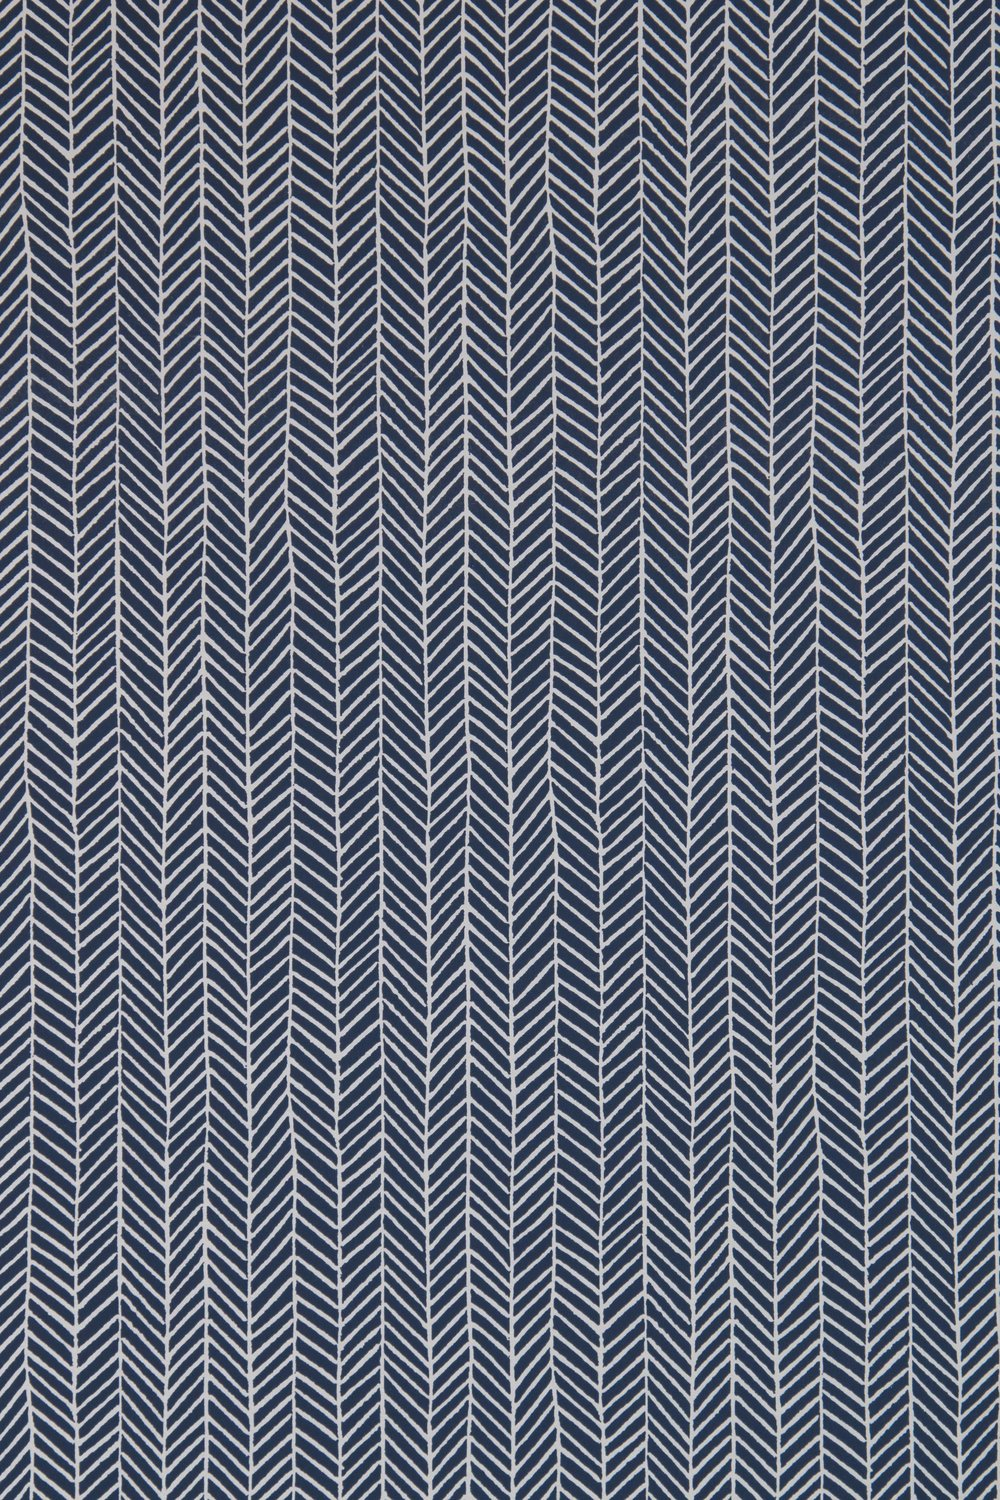 Herringbone in Navy, SL190-06